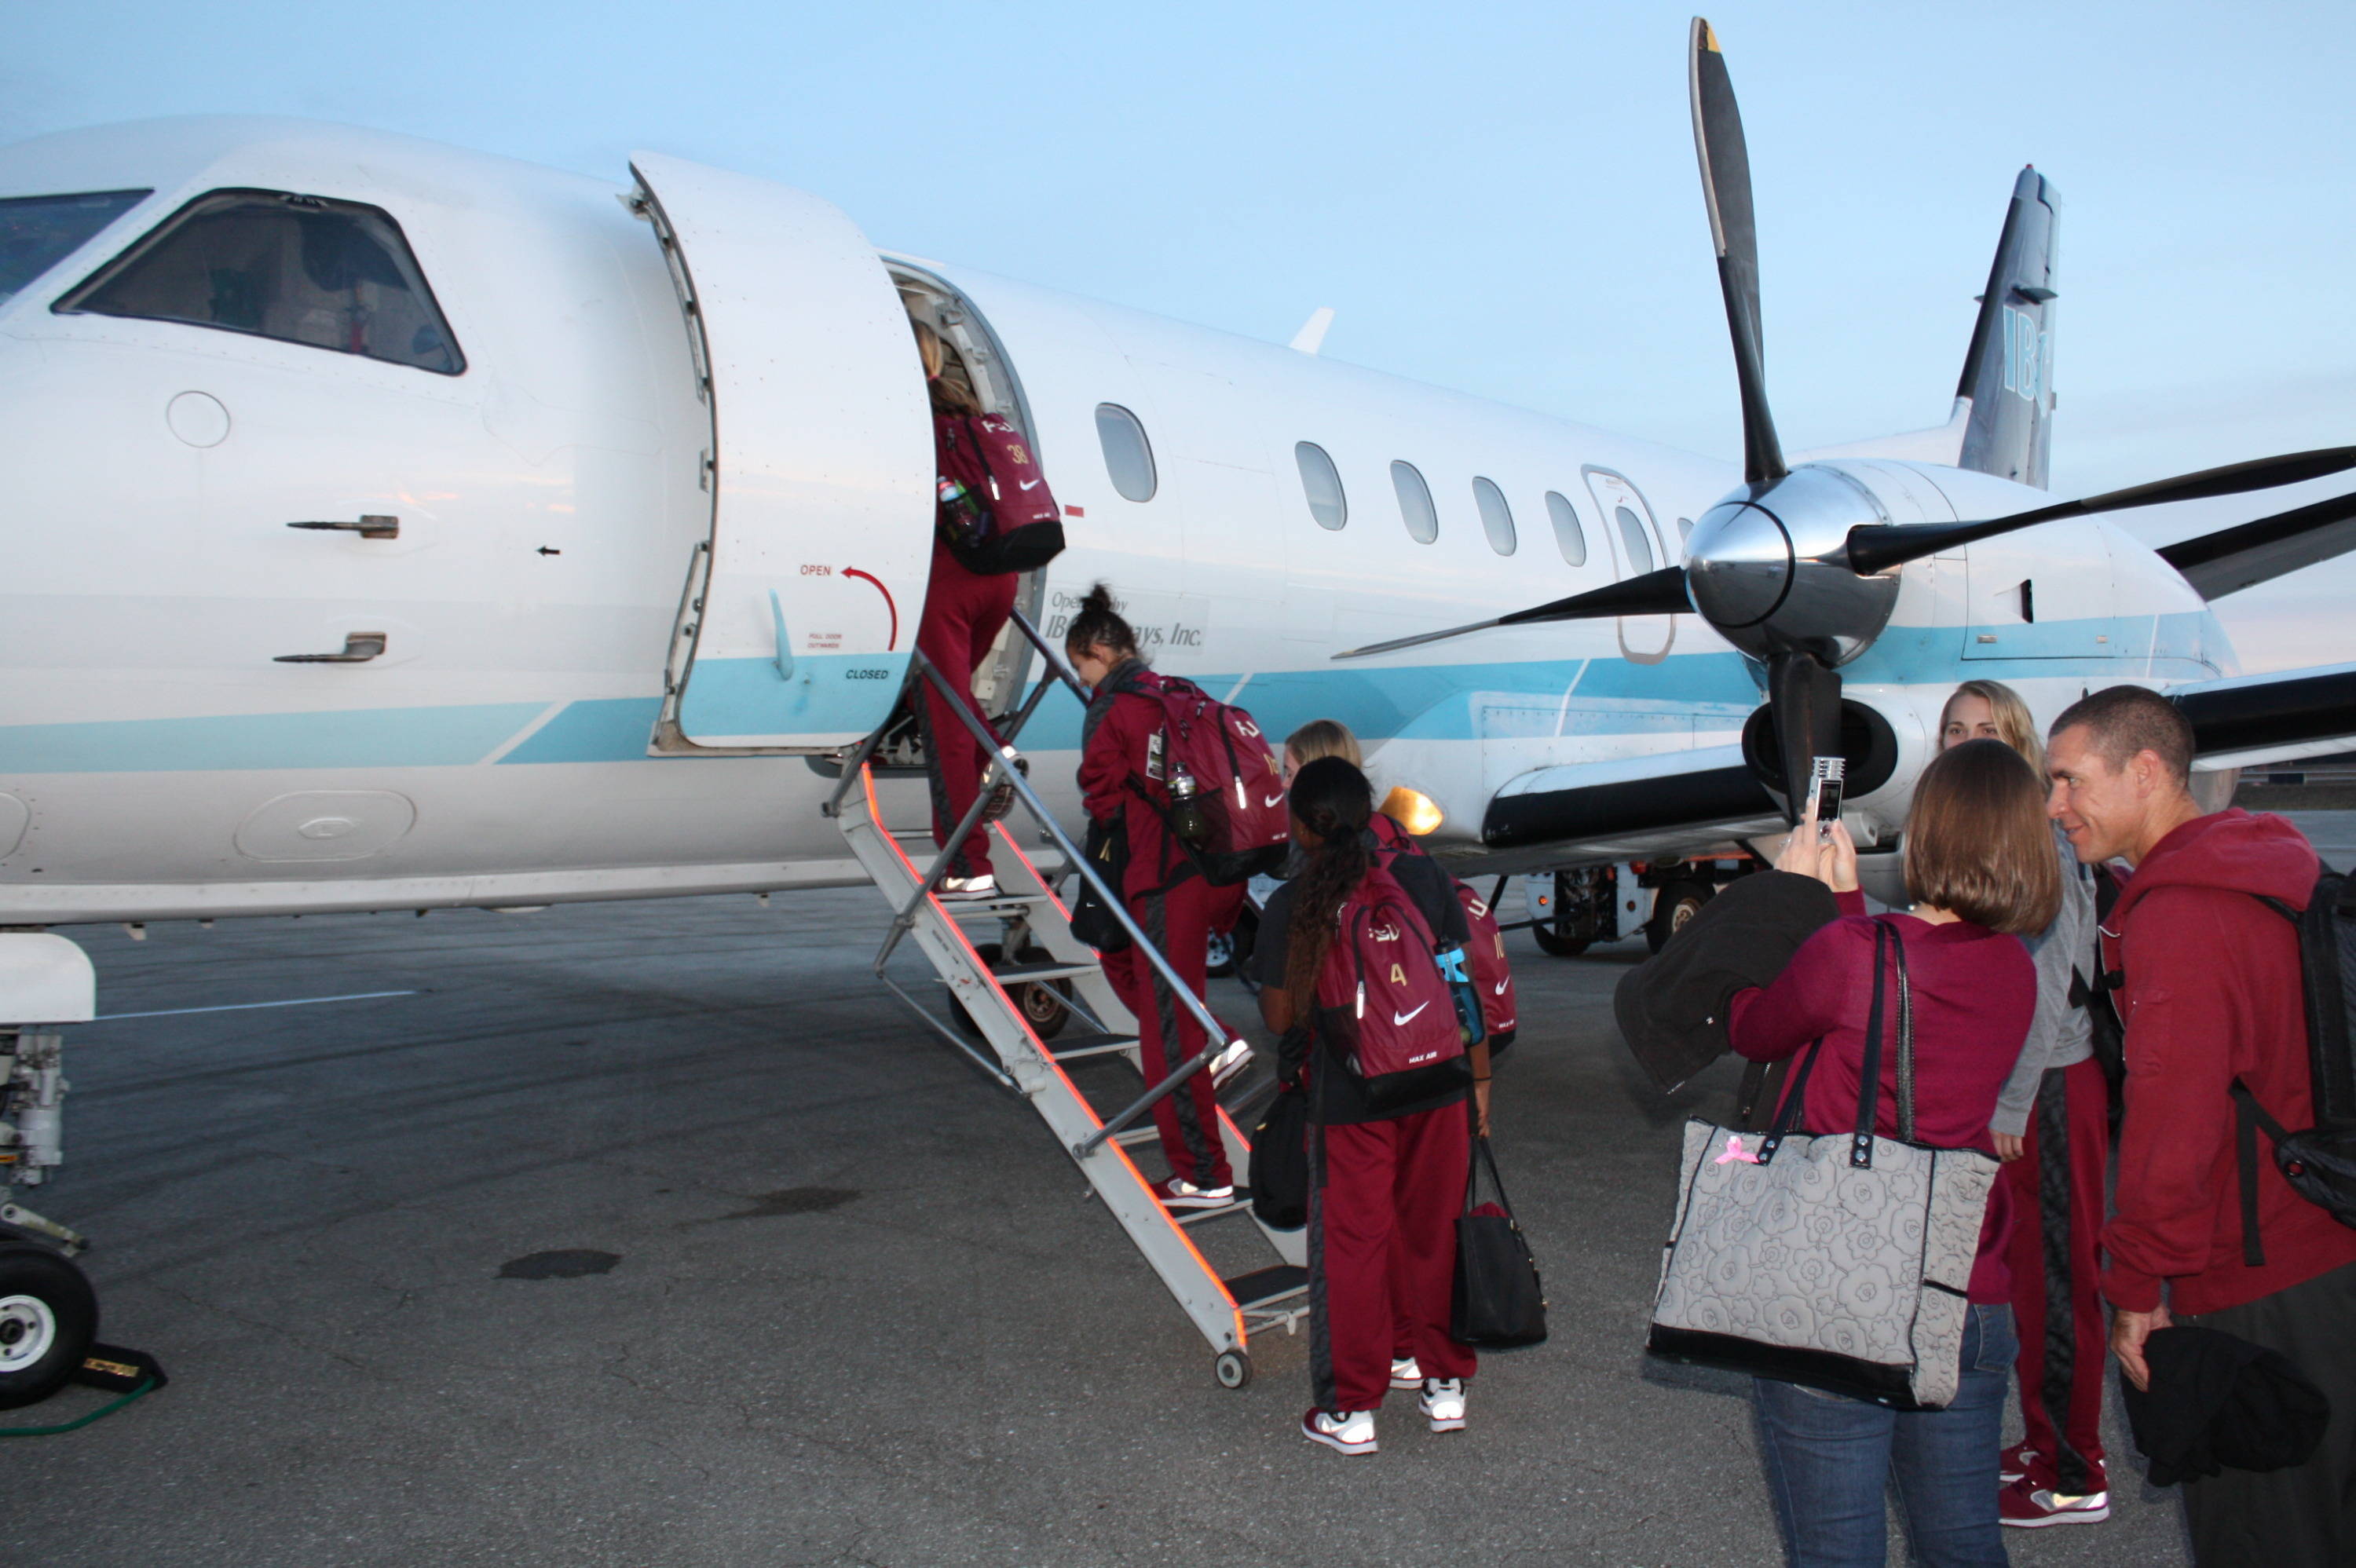 Getting on the plane and heading to Cary for the 2013 College Cup